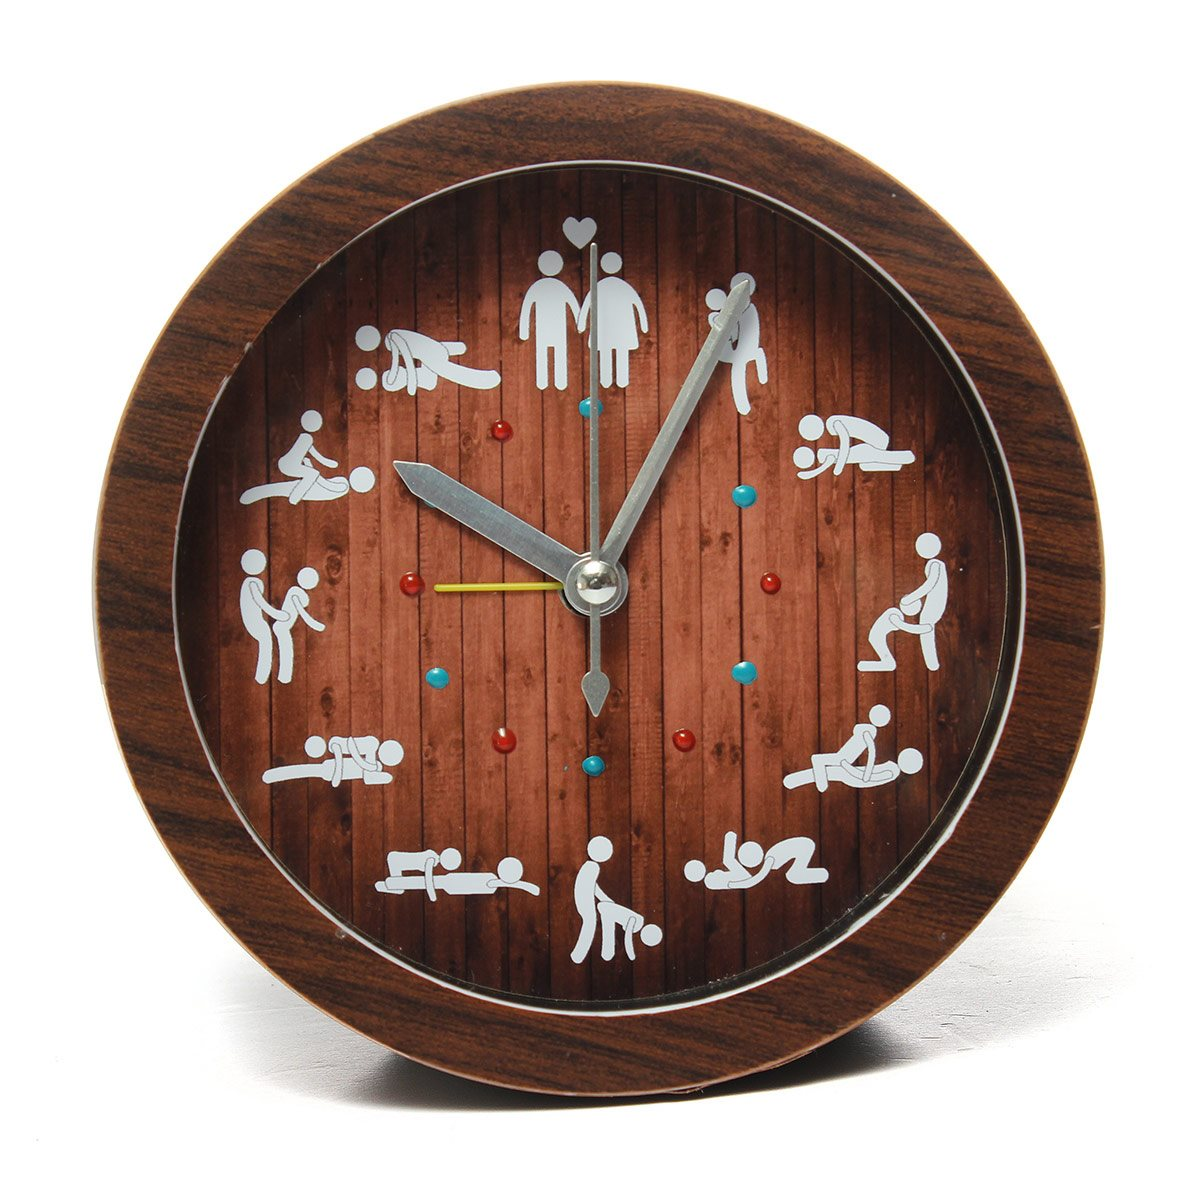 Hot Sale Cre-ative Wooden Color Sex Clock Table Circular Alarm 12 Sexy Positions Home Living Room Decoration(China (Mainland))